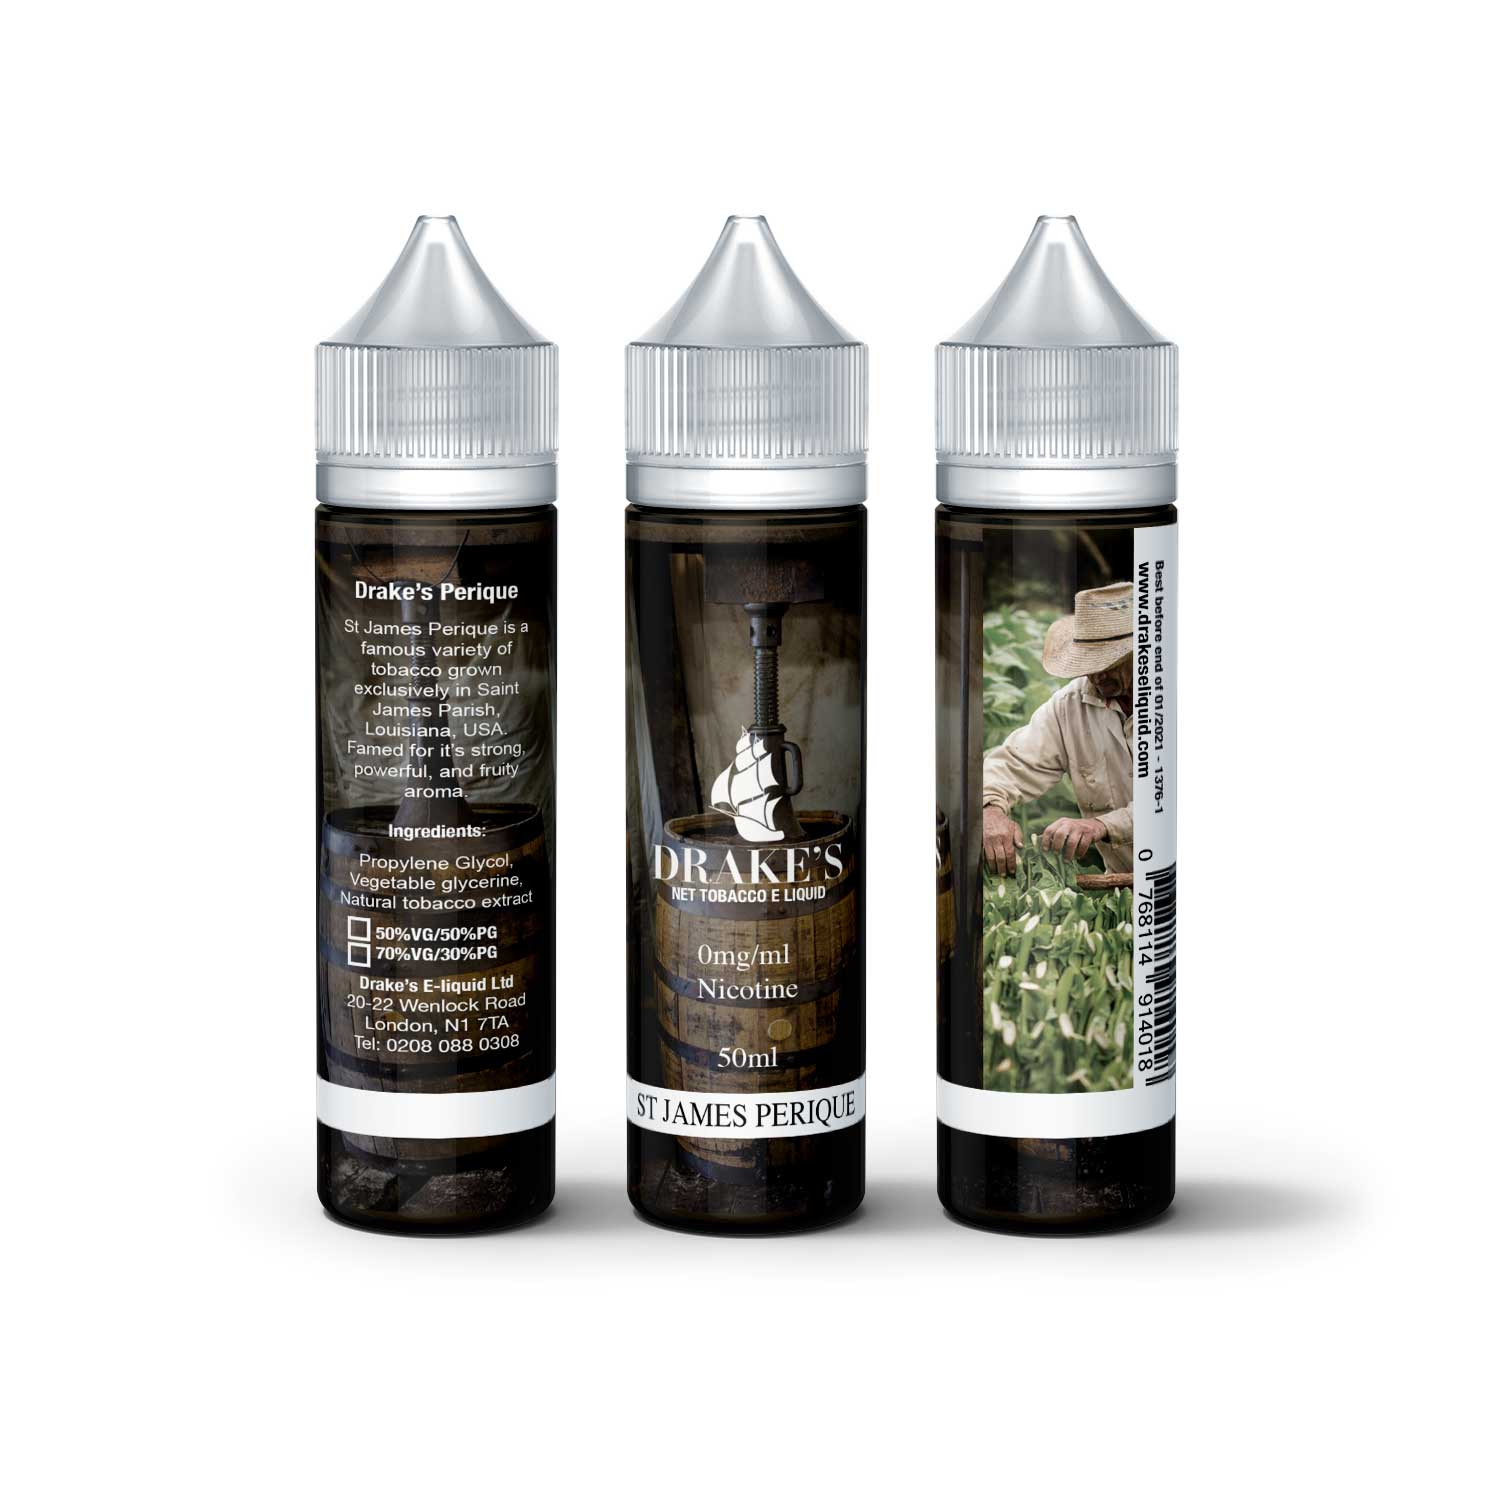 Saint James Perique E Liquid Naturally Extracted tobacco e liquid